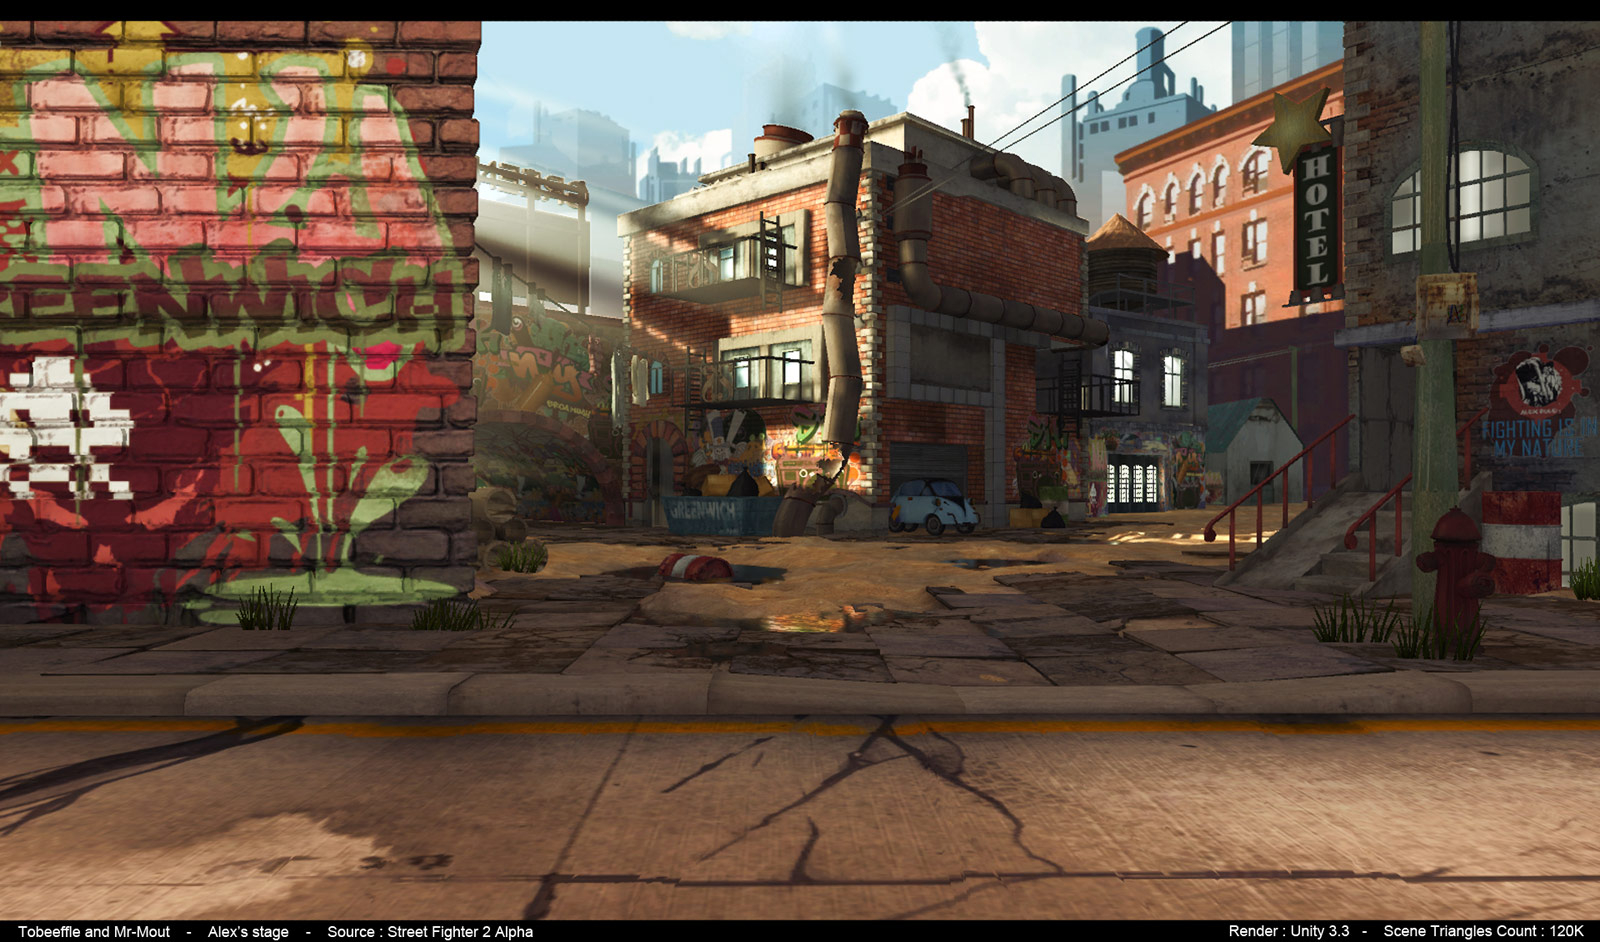 Alex's Street Fighter 3 stage reimagined image #3